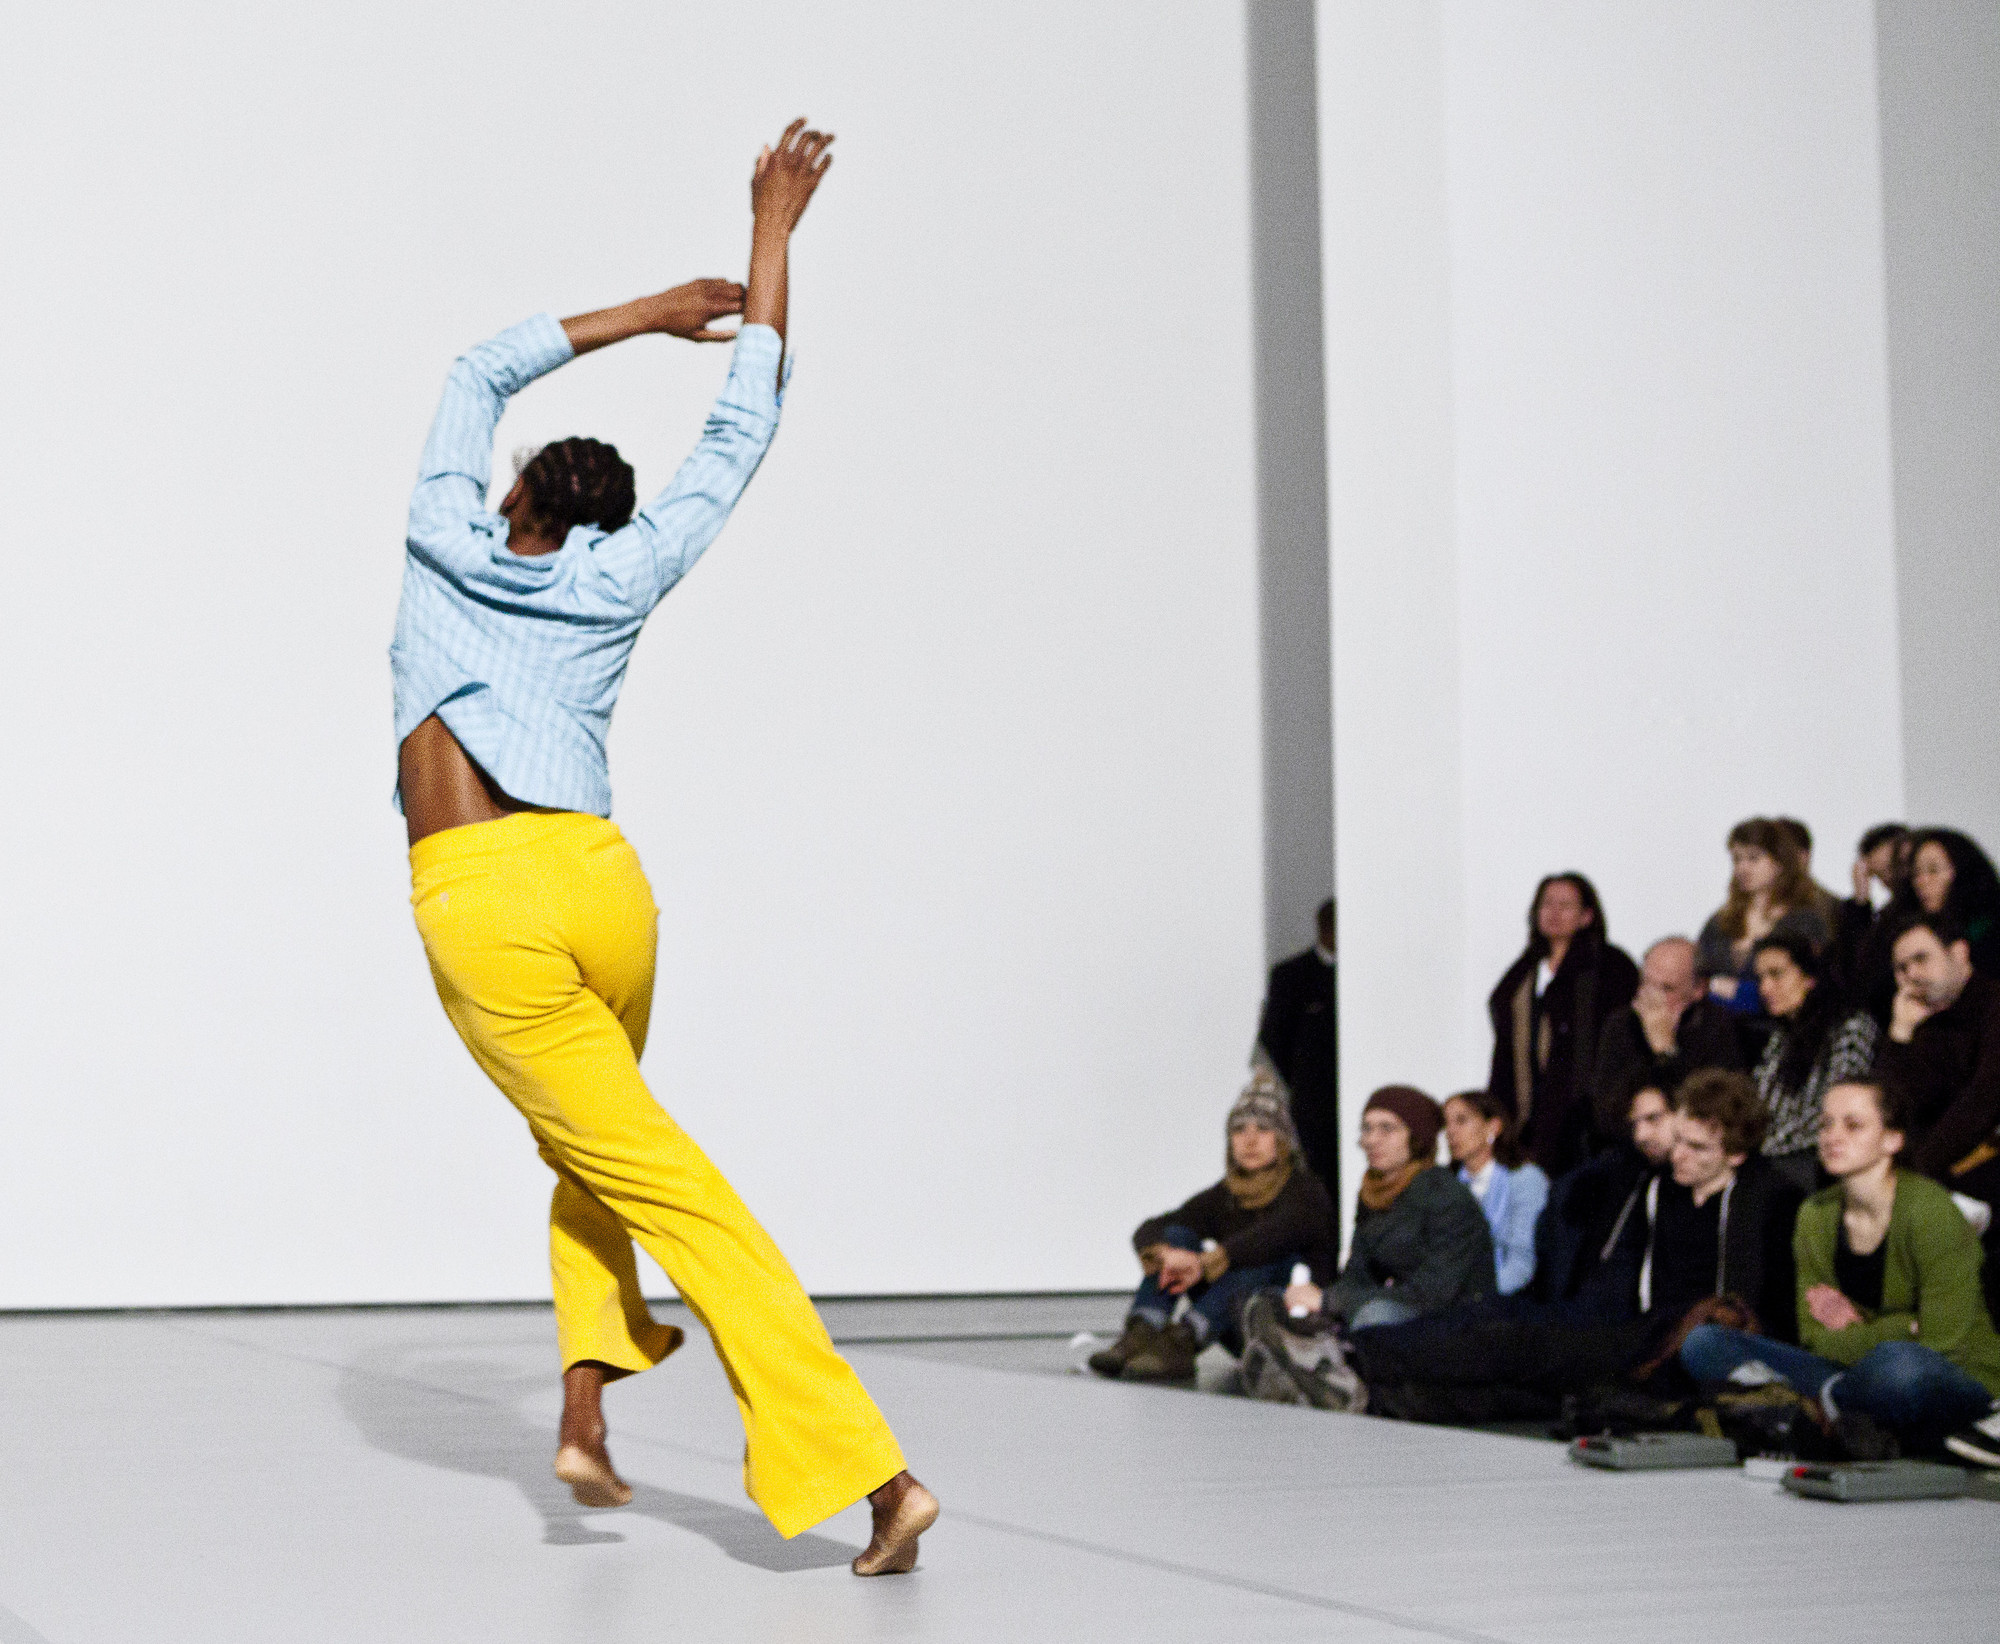 Ralph Lemon. Untitled. 2008. Performed at The Museum of Modern Art, 2011. With Okwui Okpokwasili. © 2011 Yi-Chun Wu / The Museum of Modern Art